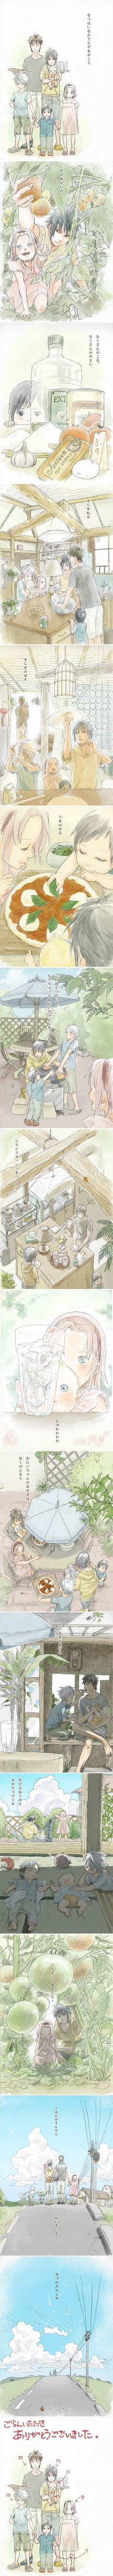 Kakashi, Yamato, Sasuke, Naruto, Sai and Sakura as a family. Omg, so cute!